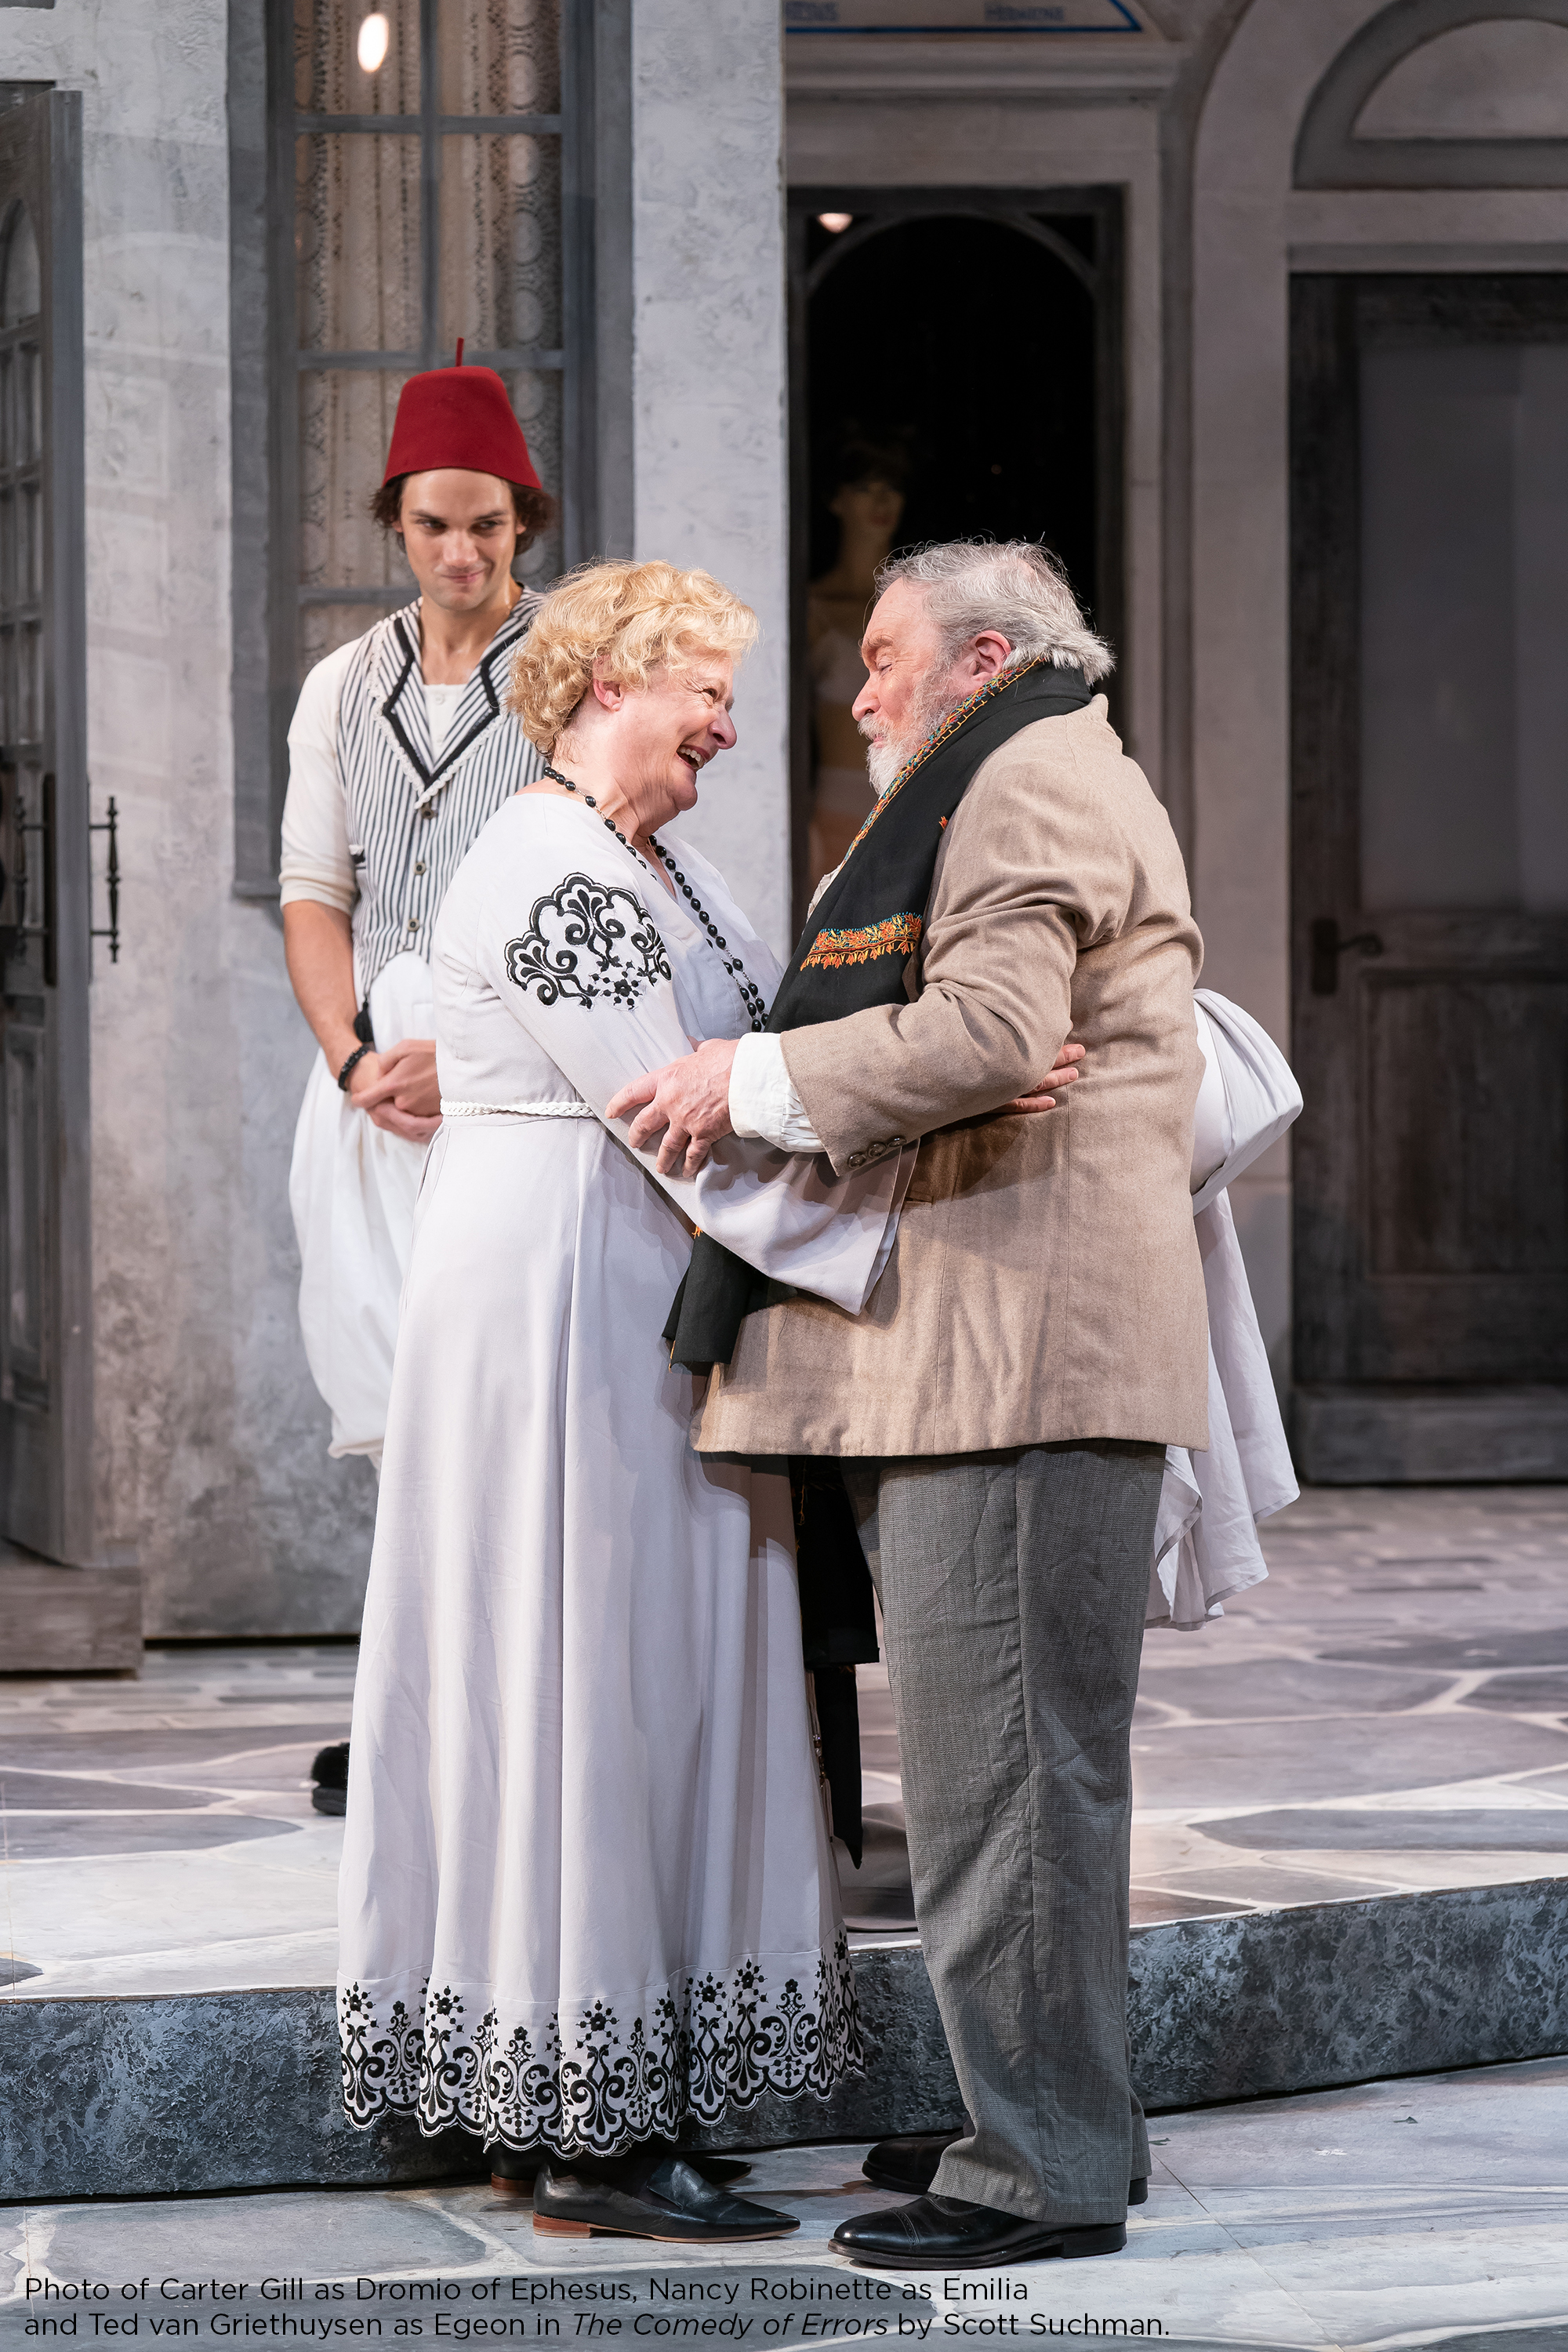 Photo of Carter Gill as Dromio of Ephesus, Nancy Robinette as Emilia and Ted van Griethuysen as Egeon in The Comedy of Errors by Scott Suchman.